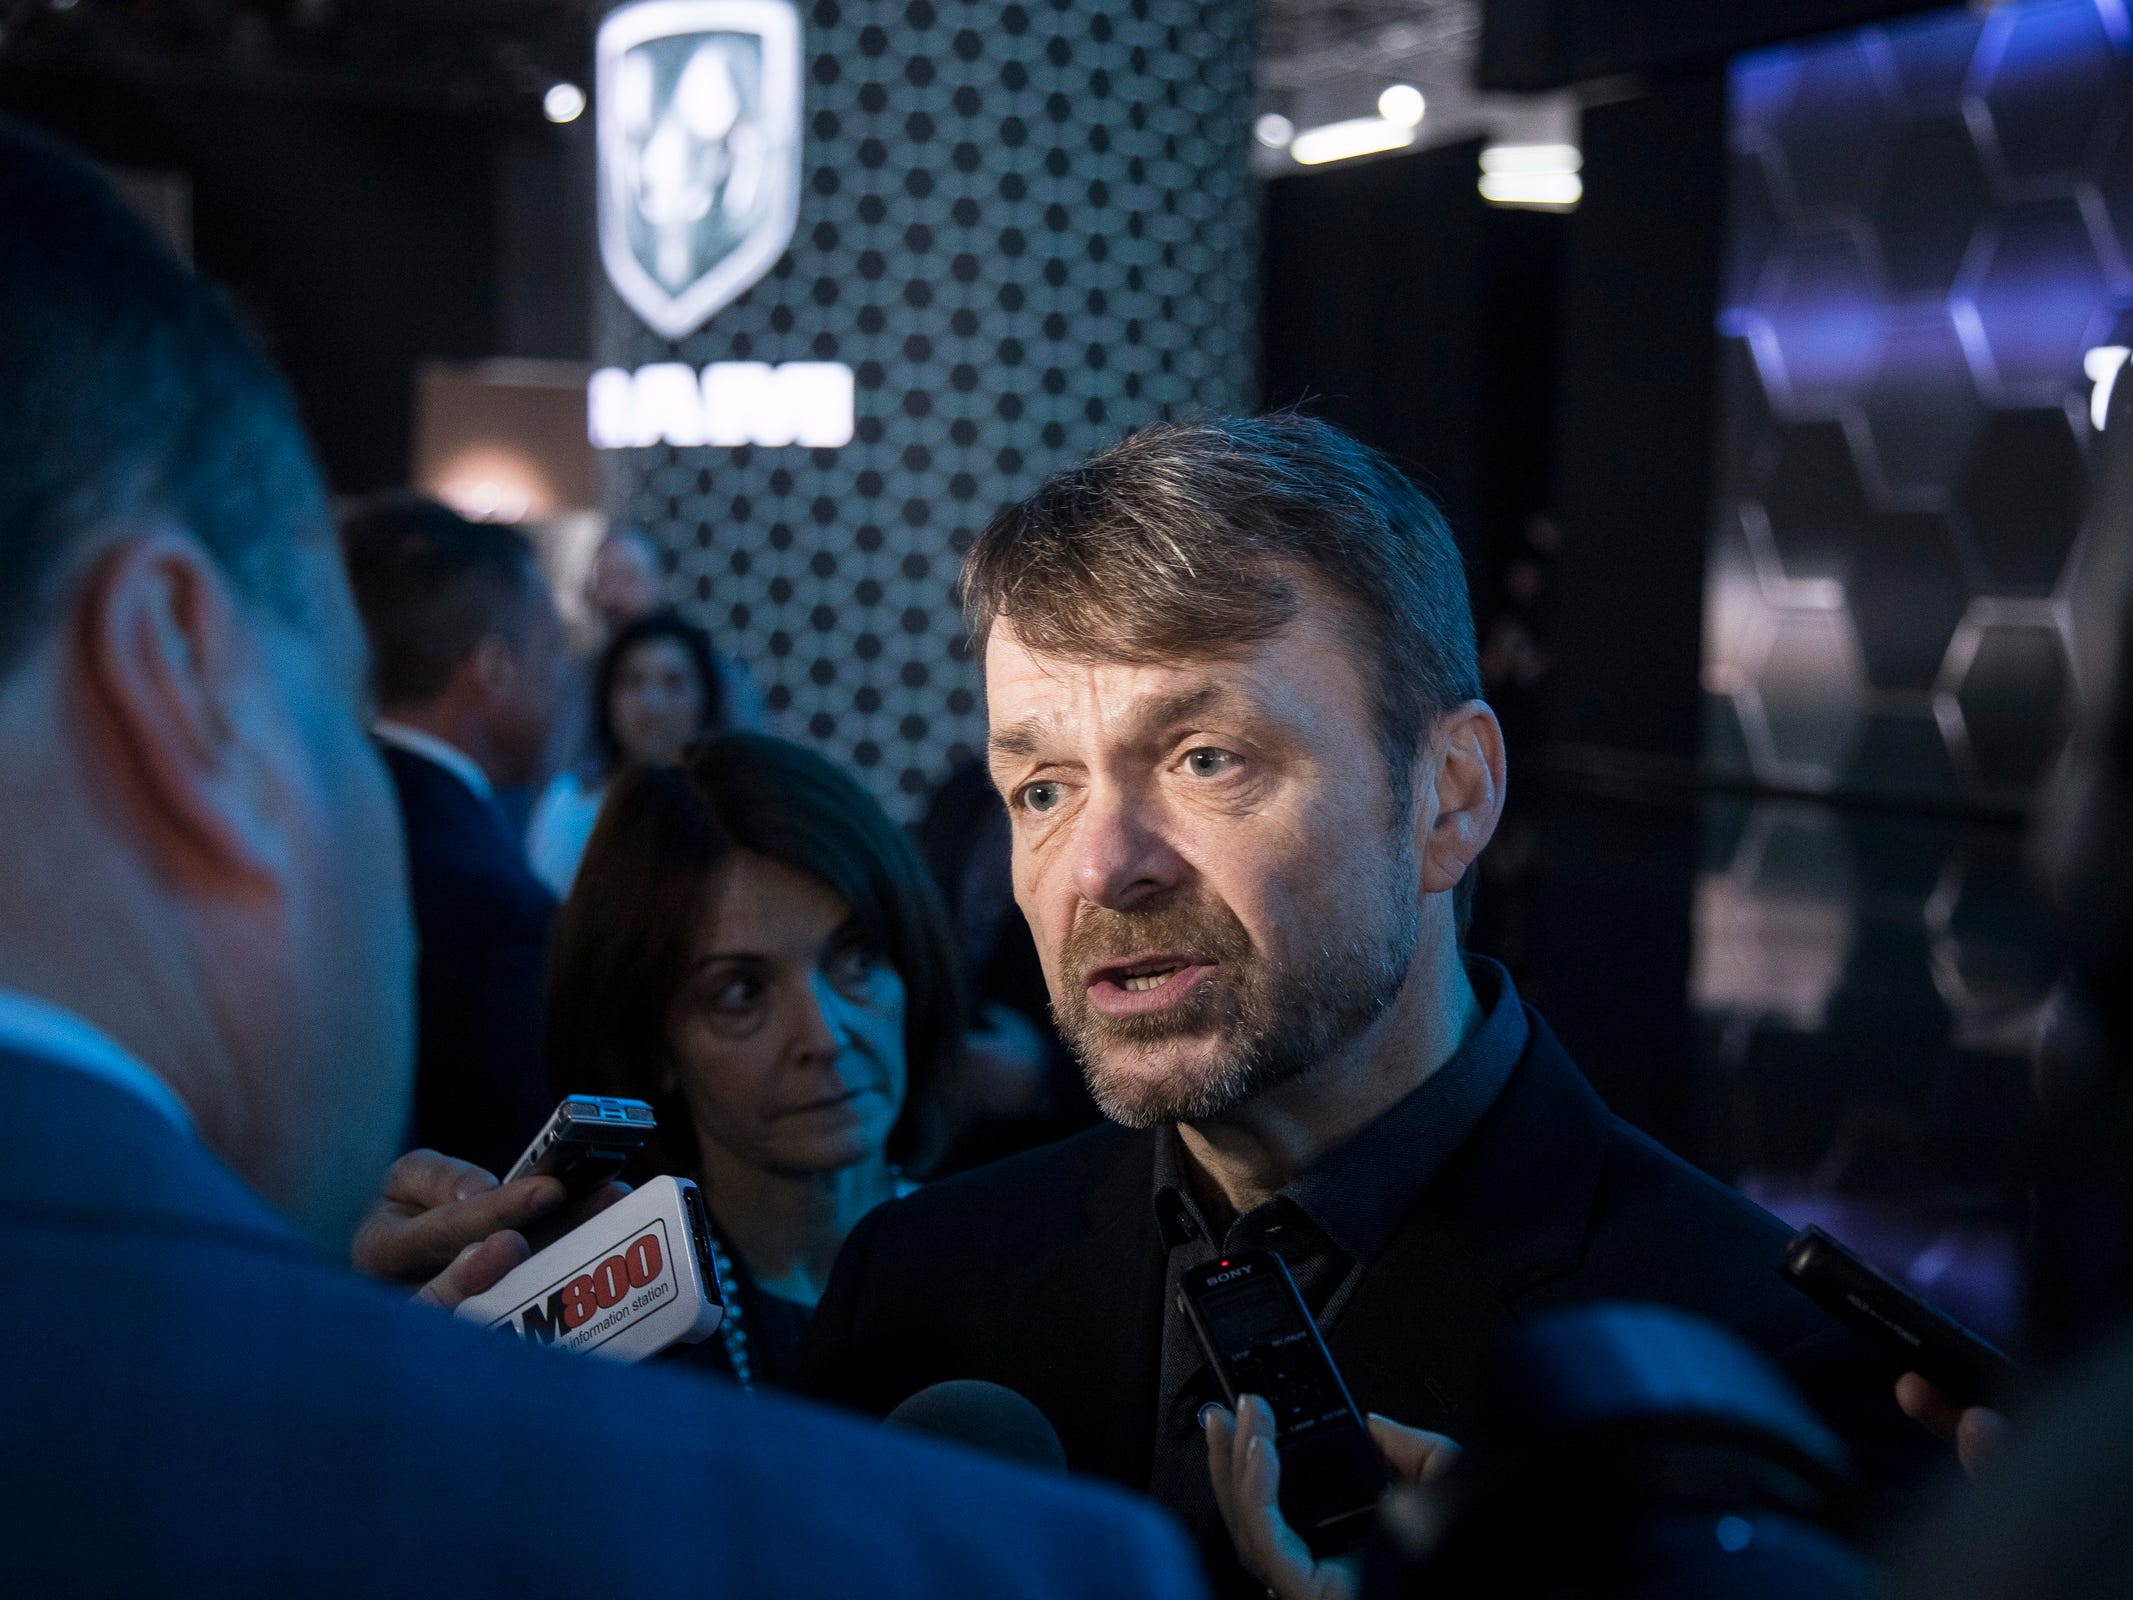 Mike Manley, CEO of FCA speaks to media members during the 2019 North American International Auto Show held at Cobo Center in downtown Detroit on Monday, Jan. 14, 2019.